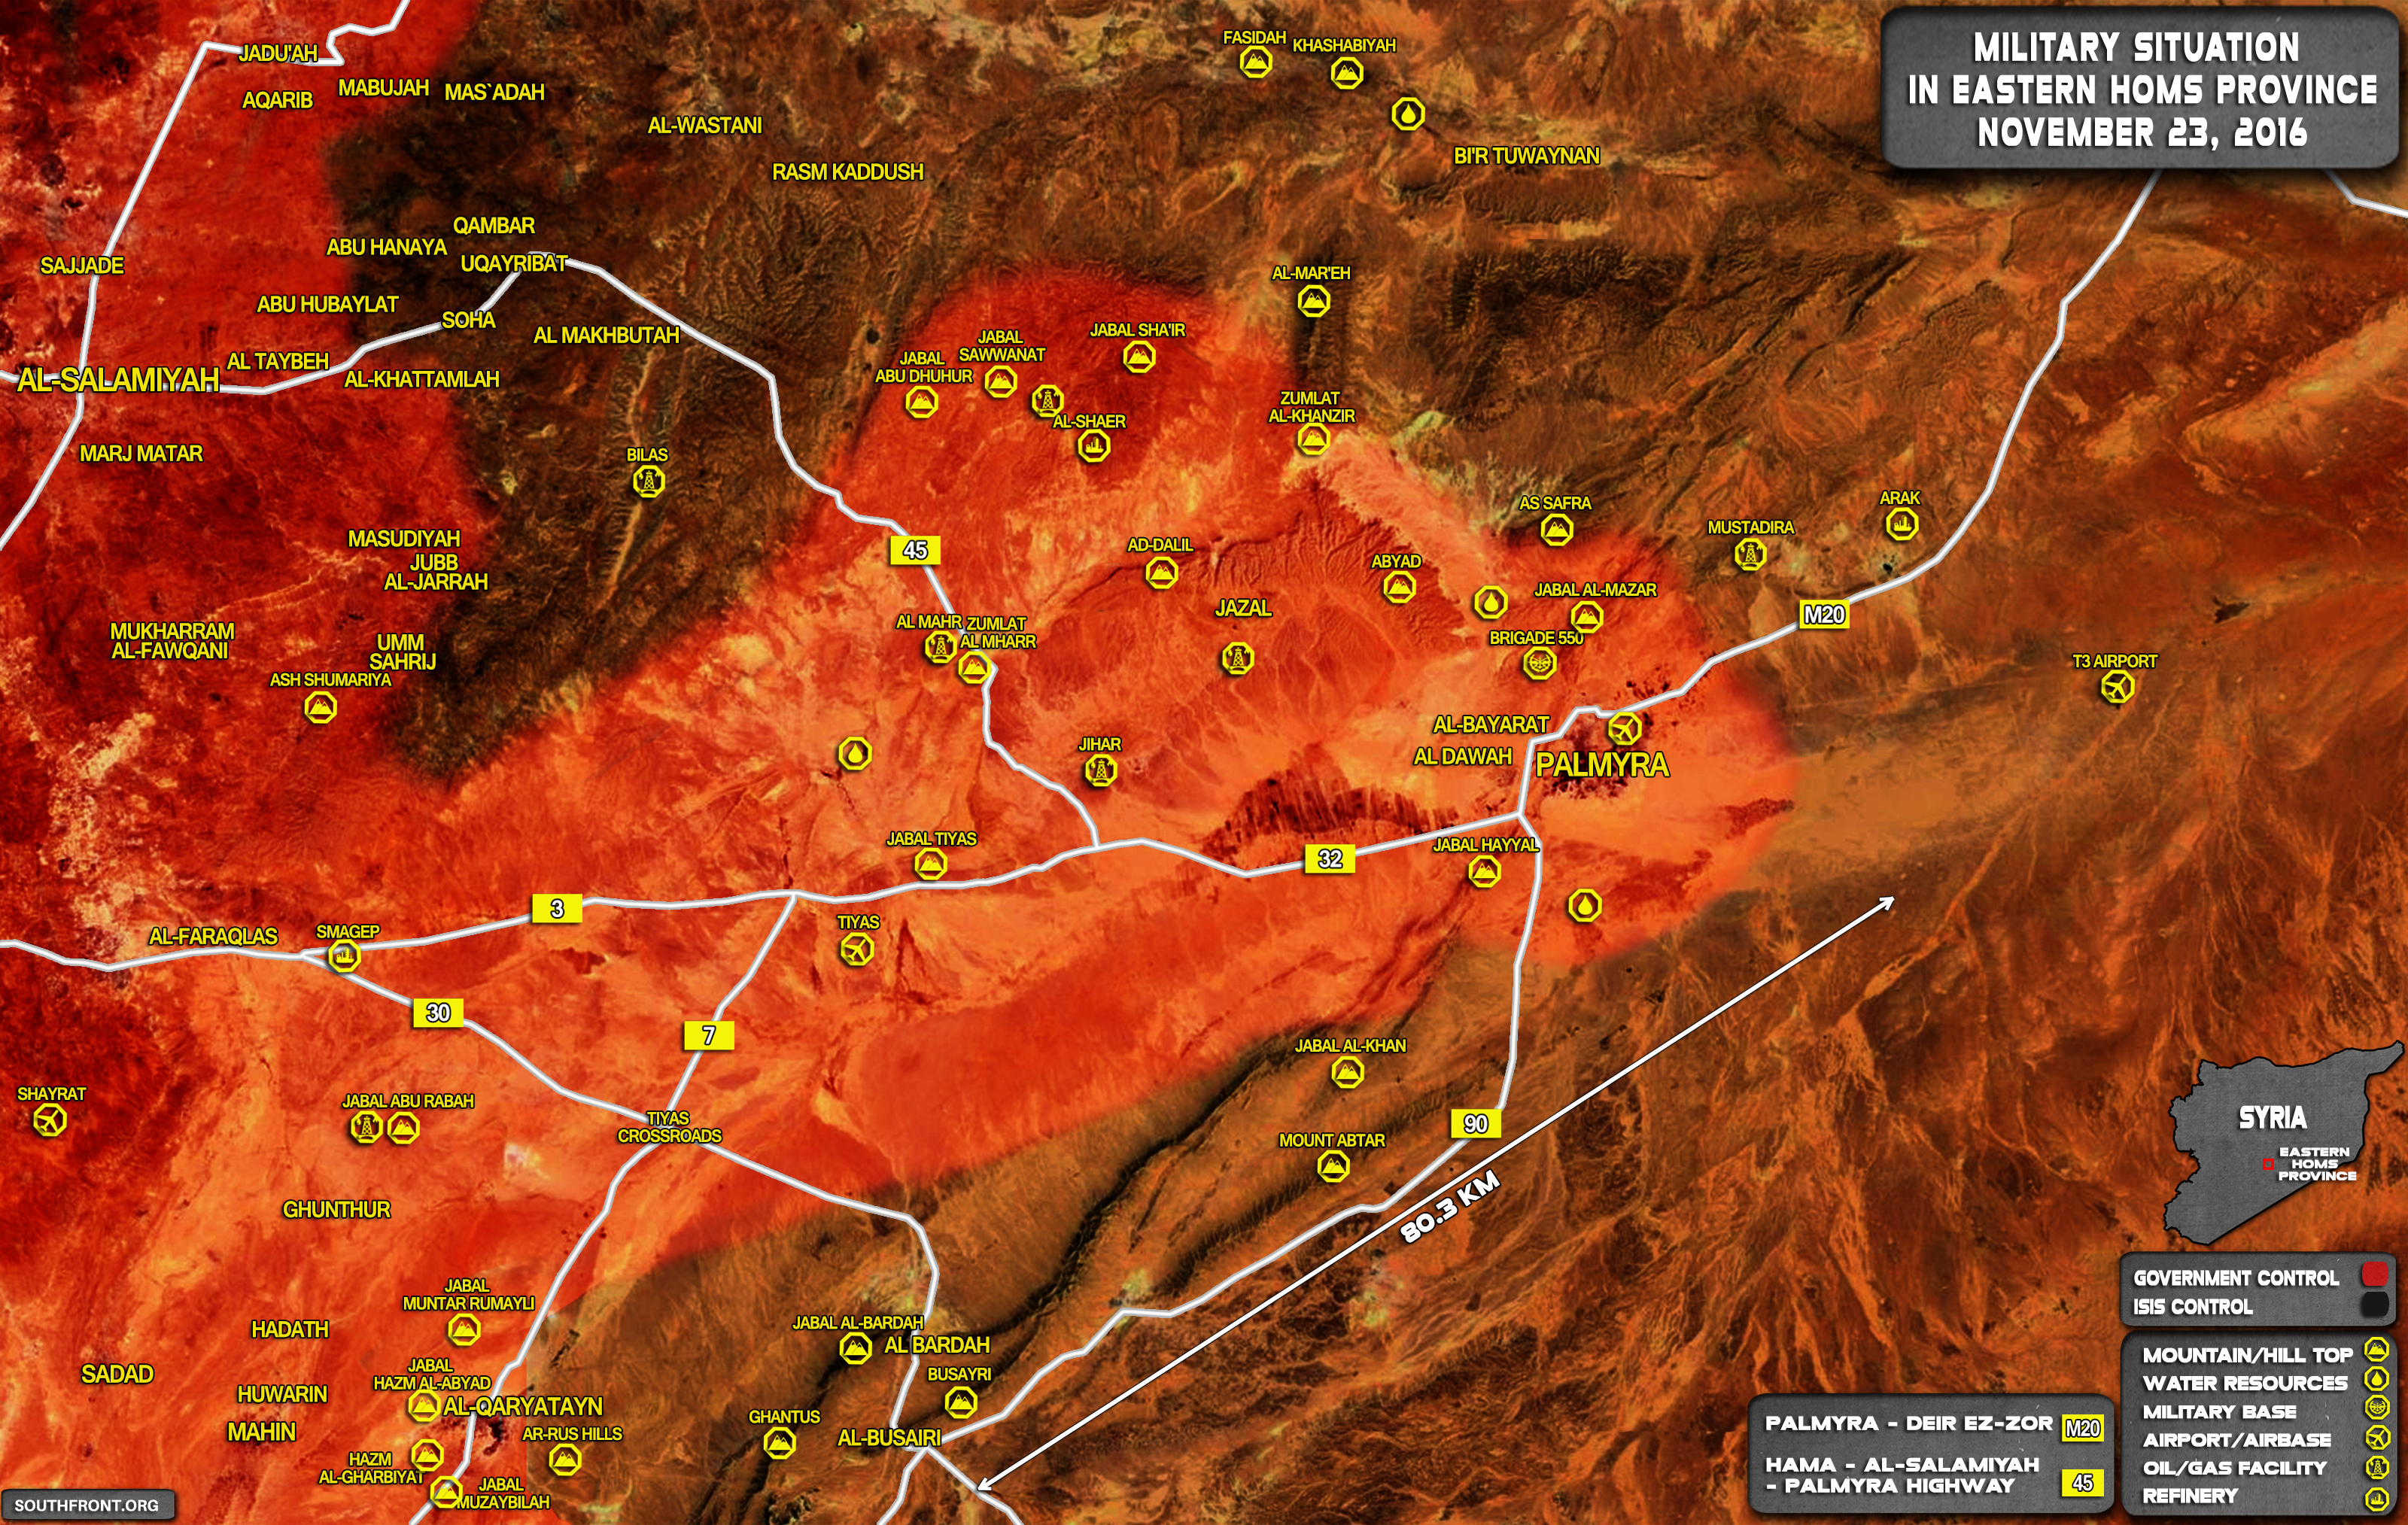 Syria Map Update: Military Situation in Eastern Homs on November 23, 2016